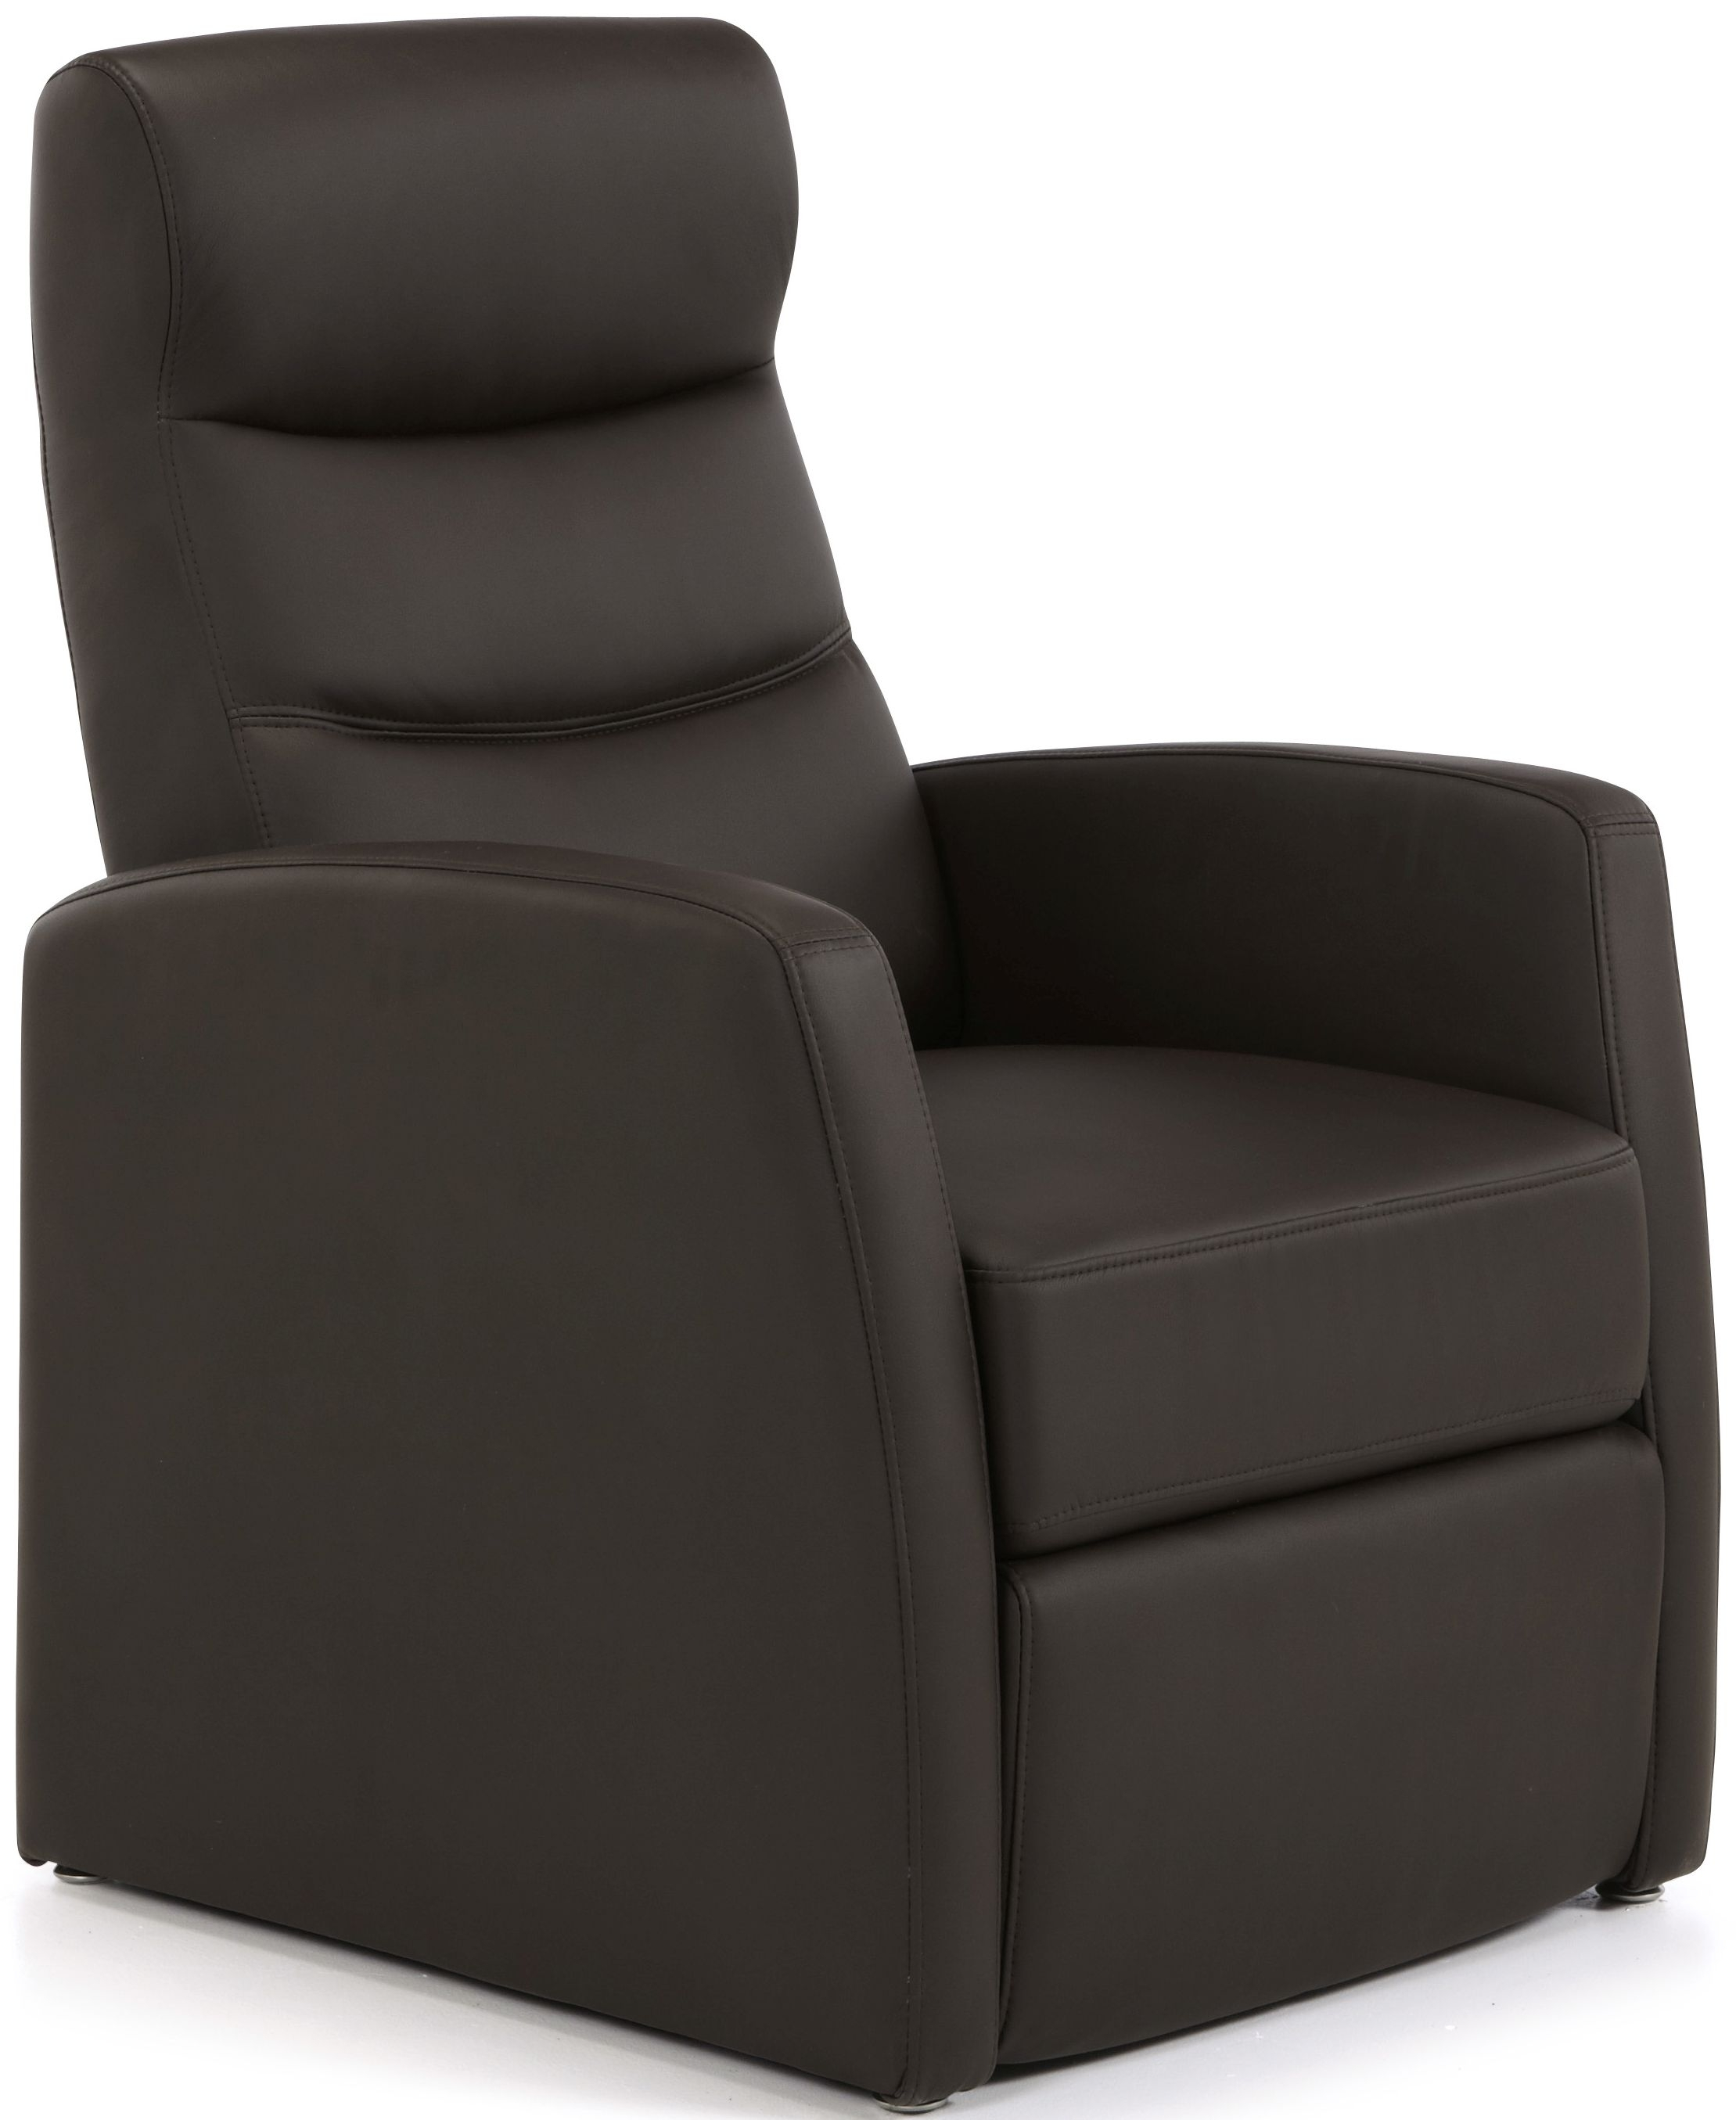 Serene Tromso Brown Faux Leather Recliner Chair